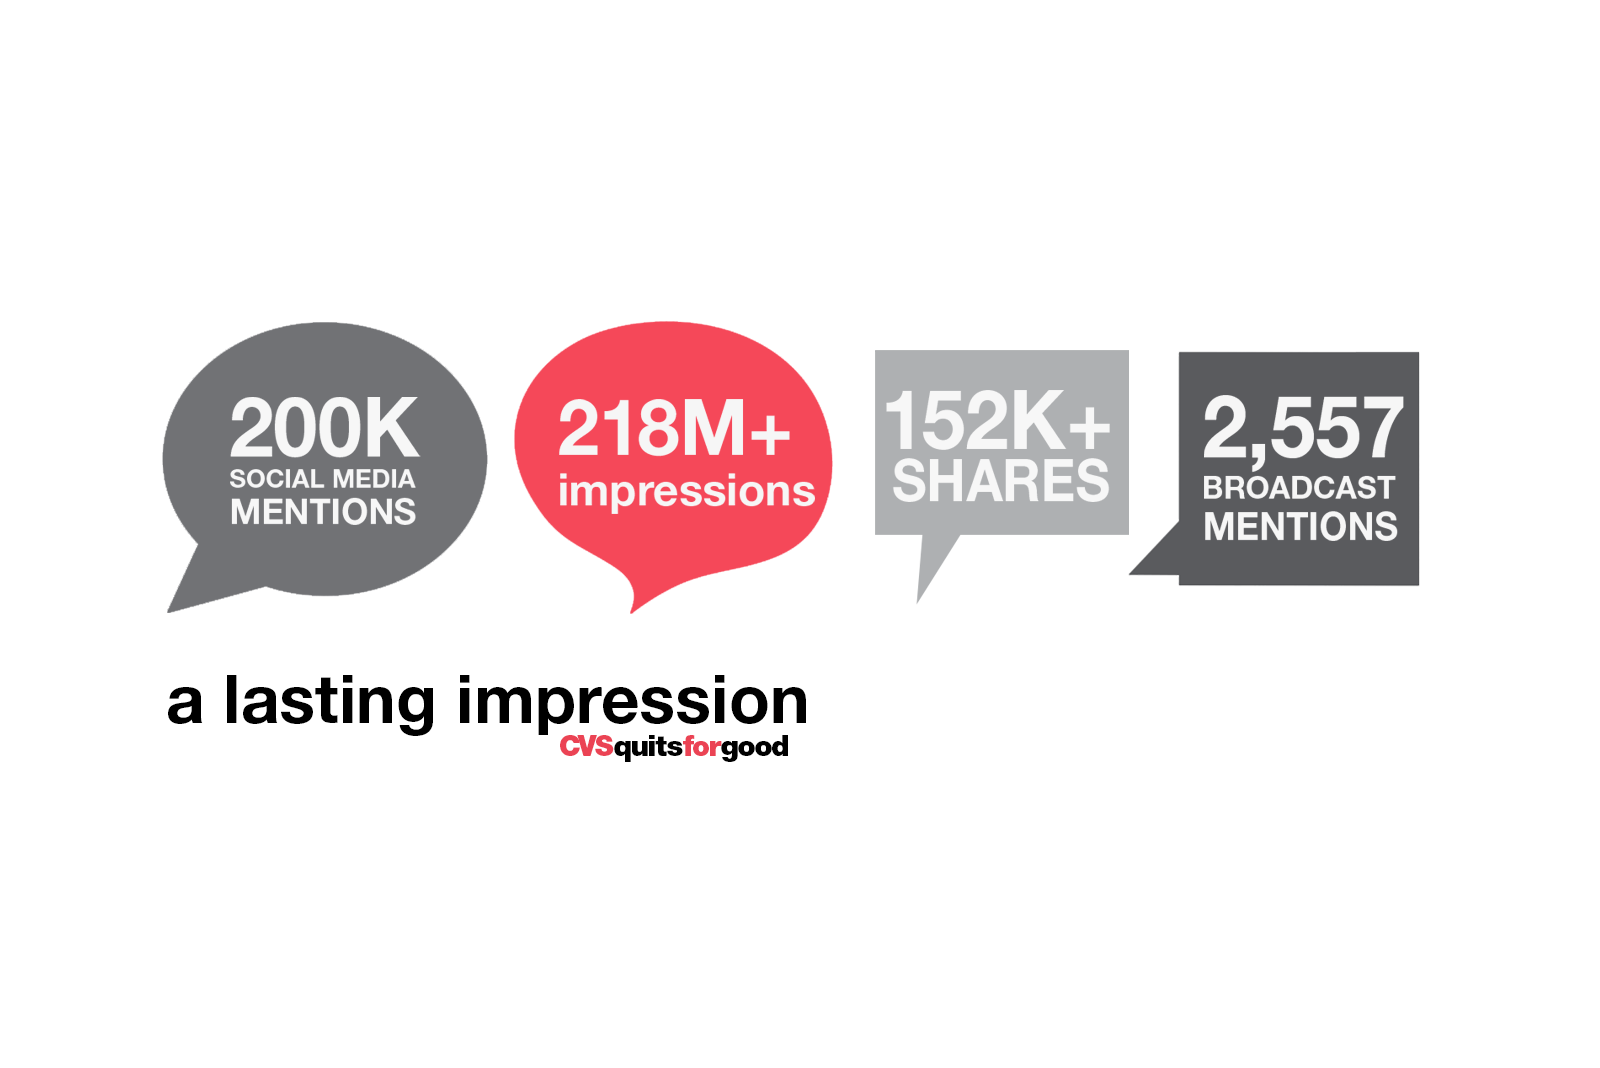 graphic stats of the social media mentions and broadcast impressions of the CVS Health quits tobacco campaign